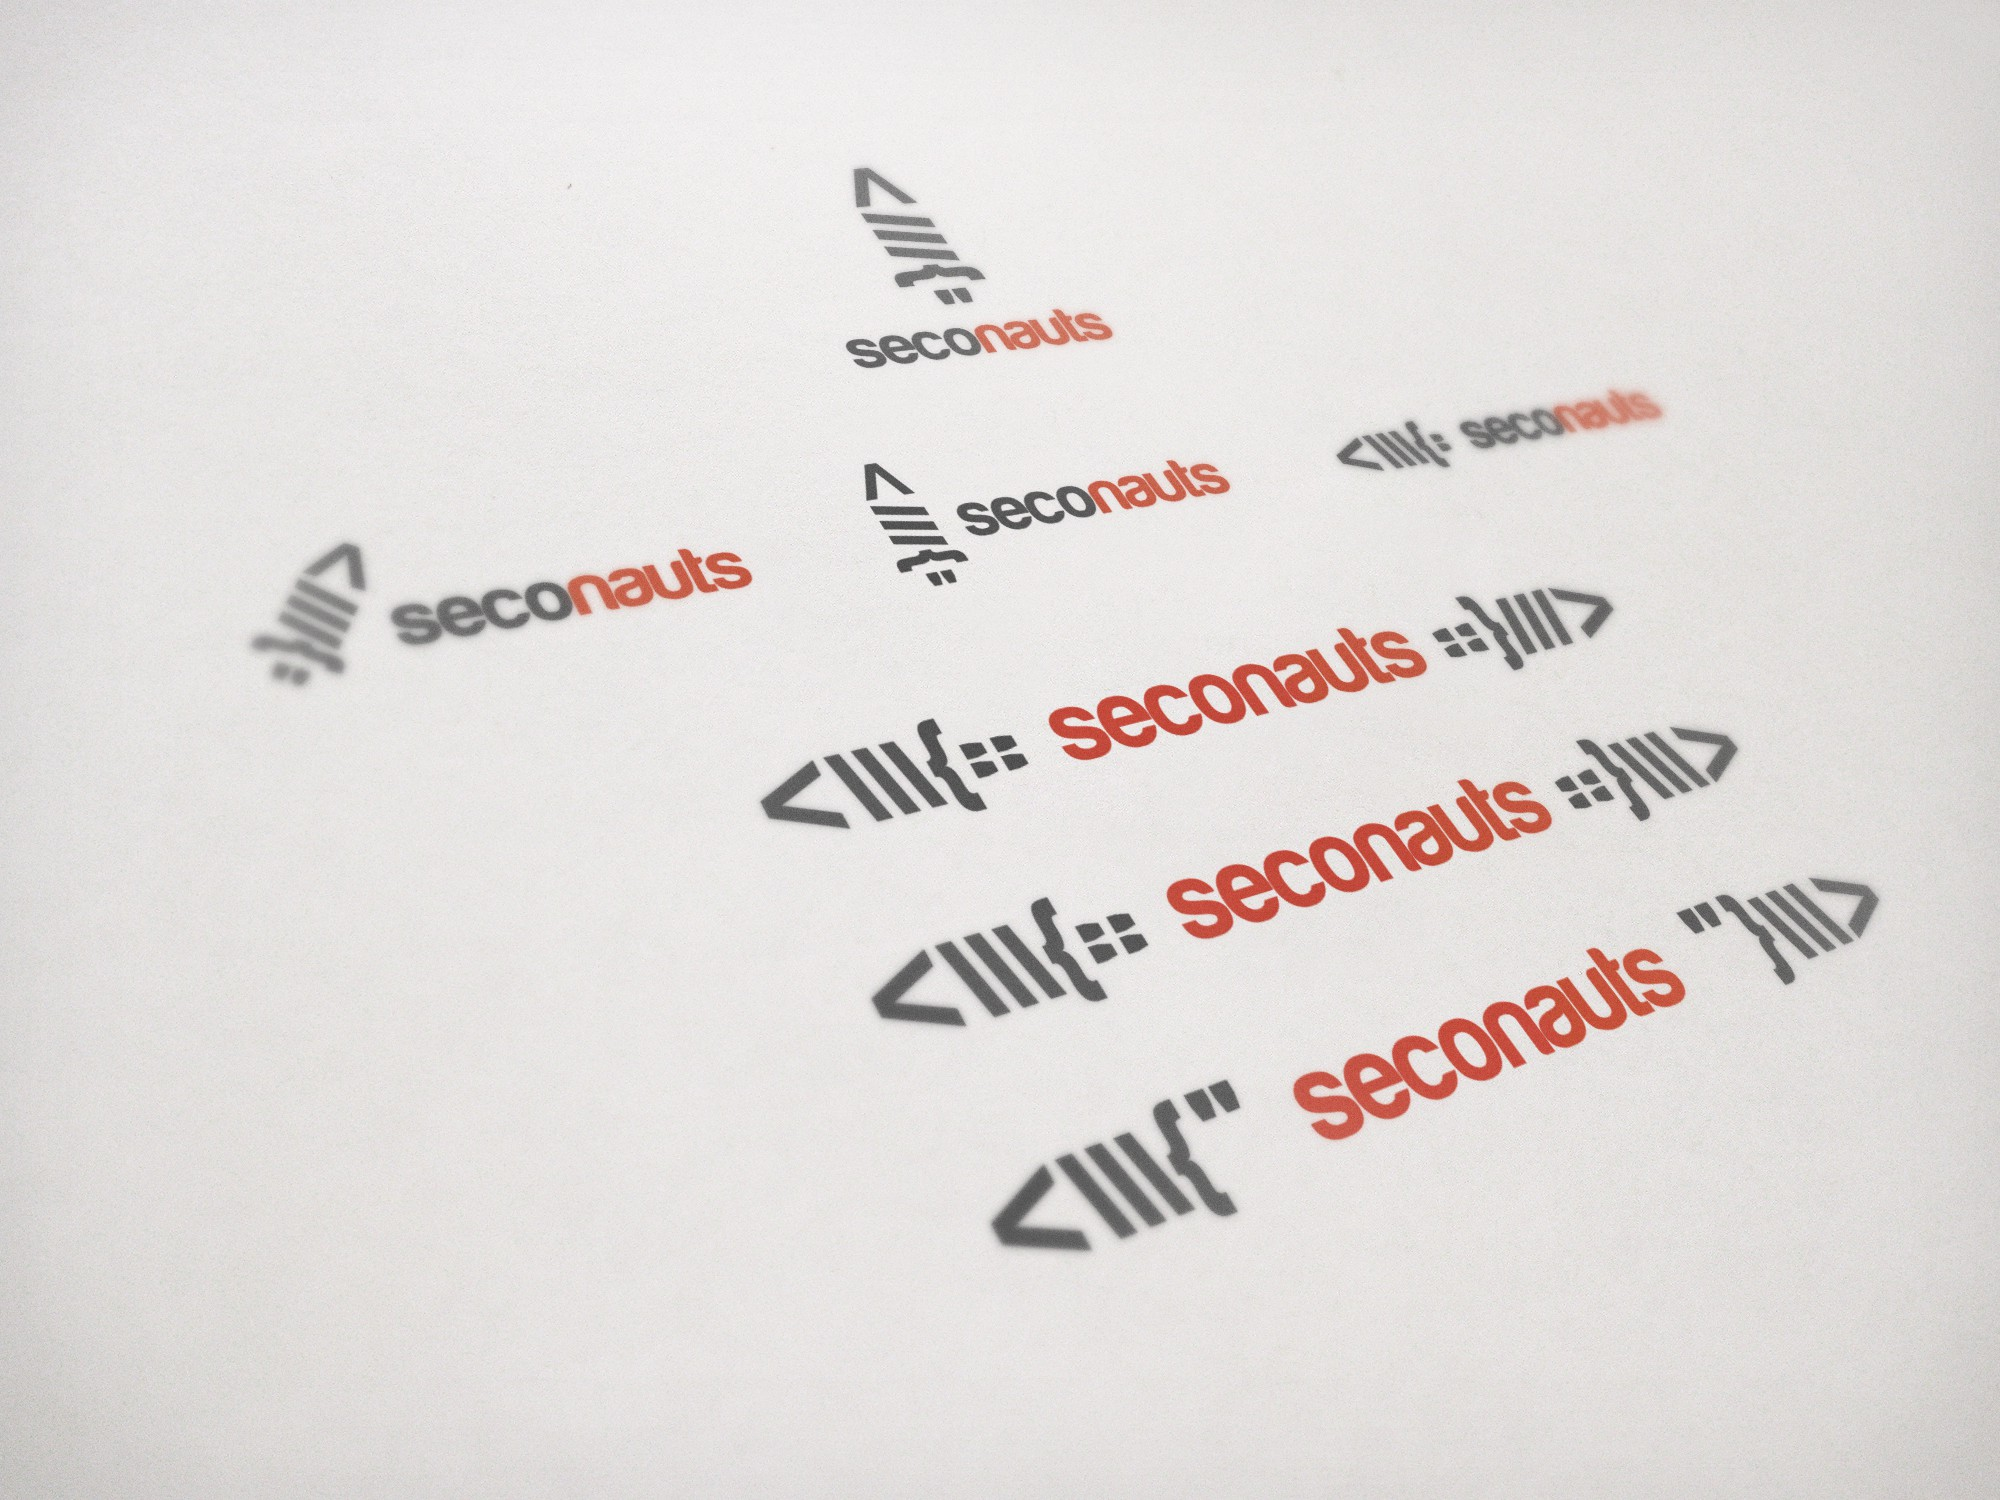 Create the next logo for Seconauts